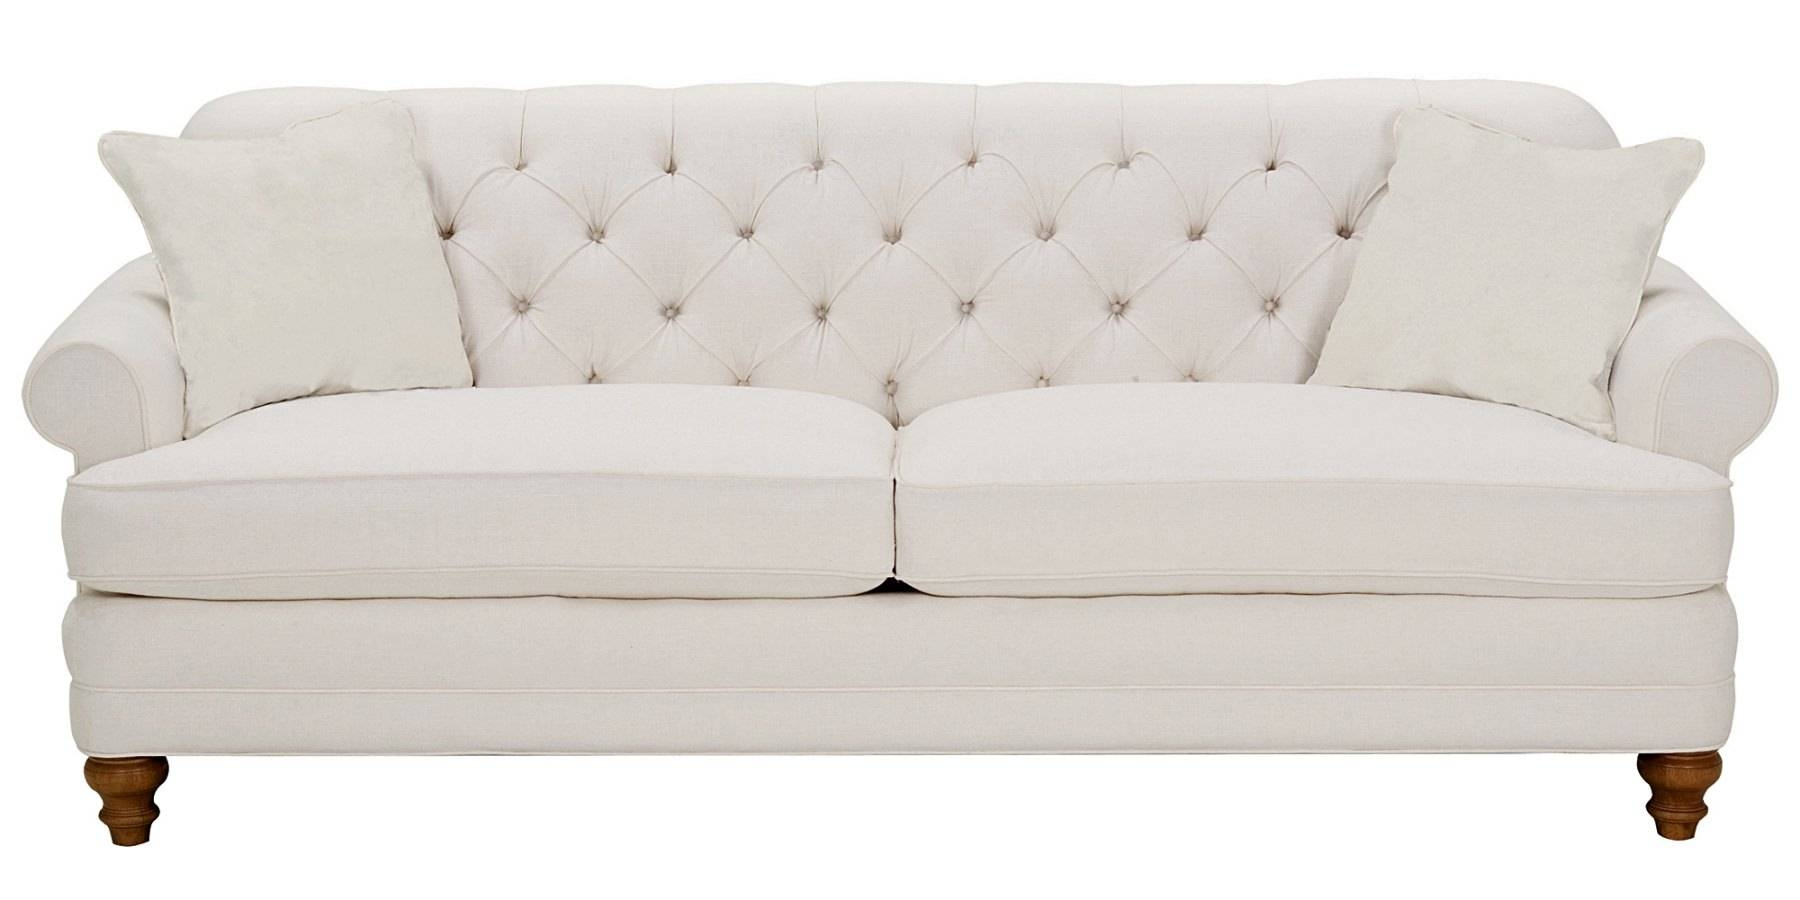 High Back Sofa For Sale | Tehranmix Decoration for Sofas With High Backs (Image 7 of 30)